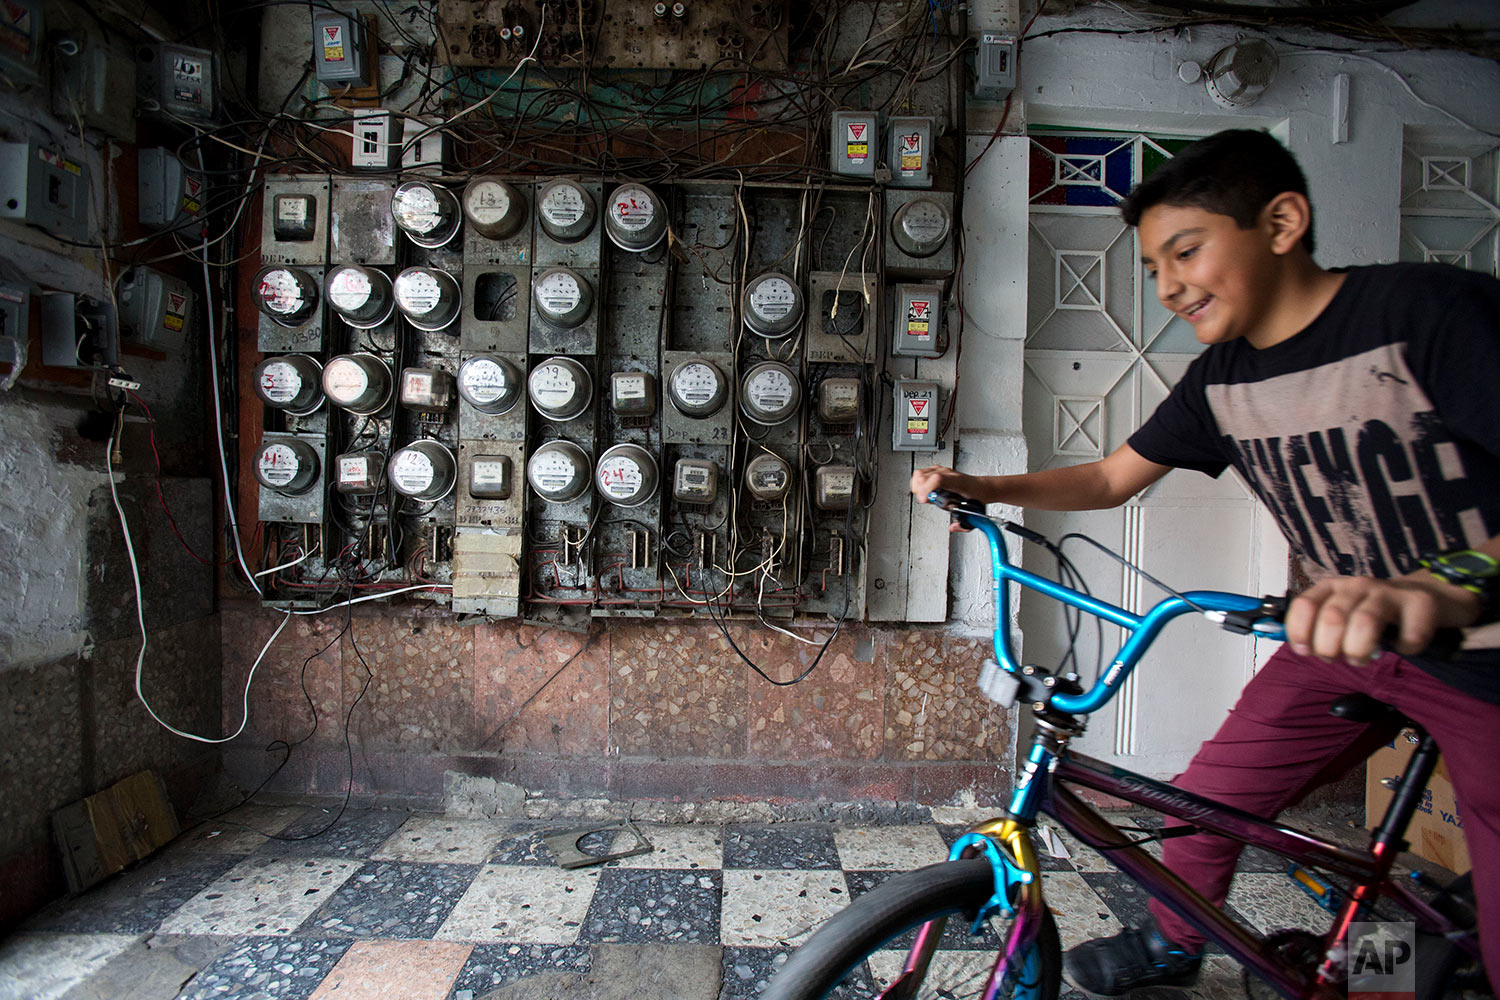 In this Jan. 5, 2018 photo, a boy living with his family in a tent camp in the street quickly fetches his bike from inside the earthquake-damaged building at Independencia 18 in Mexico City. (AP Photo/Rebecca Blackwell)